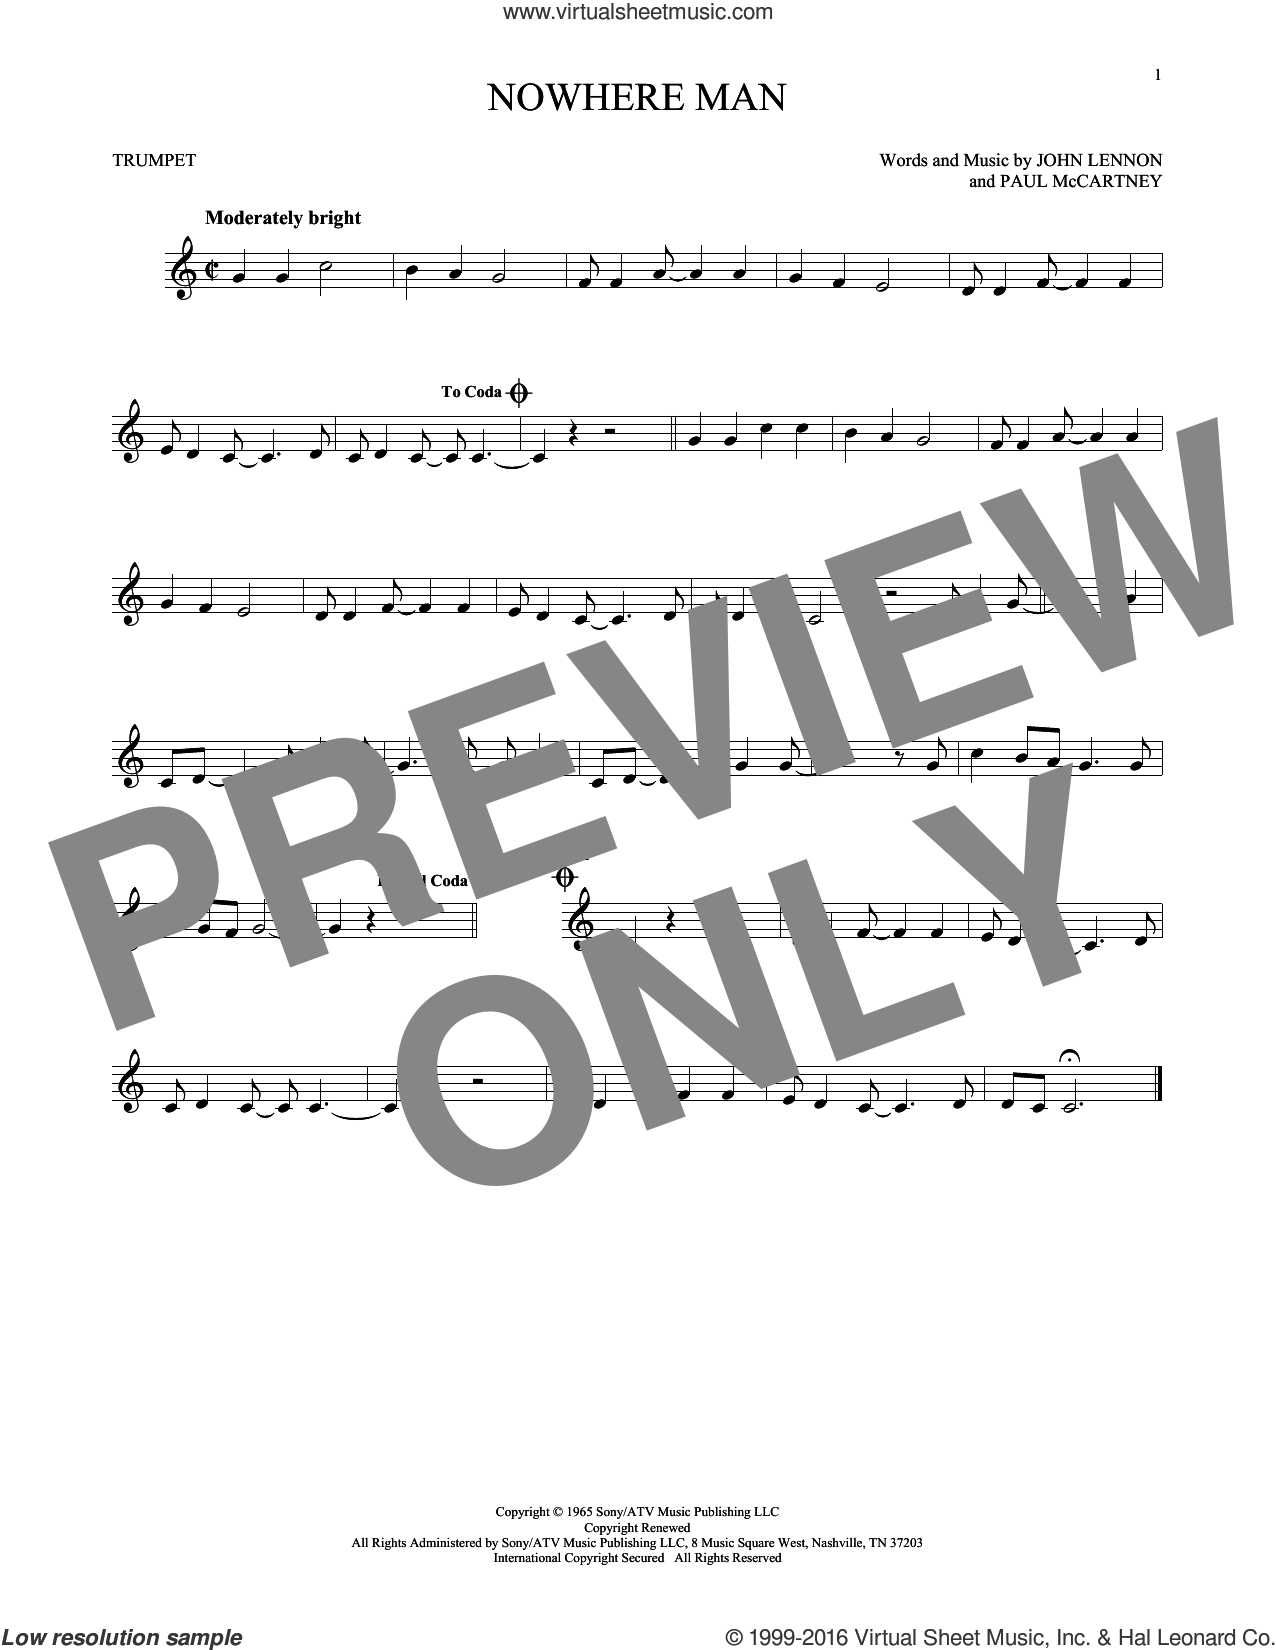 Nowhere Man sheet music for trumpet solo by The Beatles, John Lennon and Paul McCartney, intermediate skill level